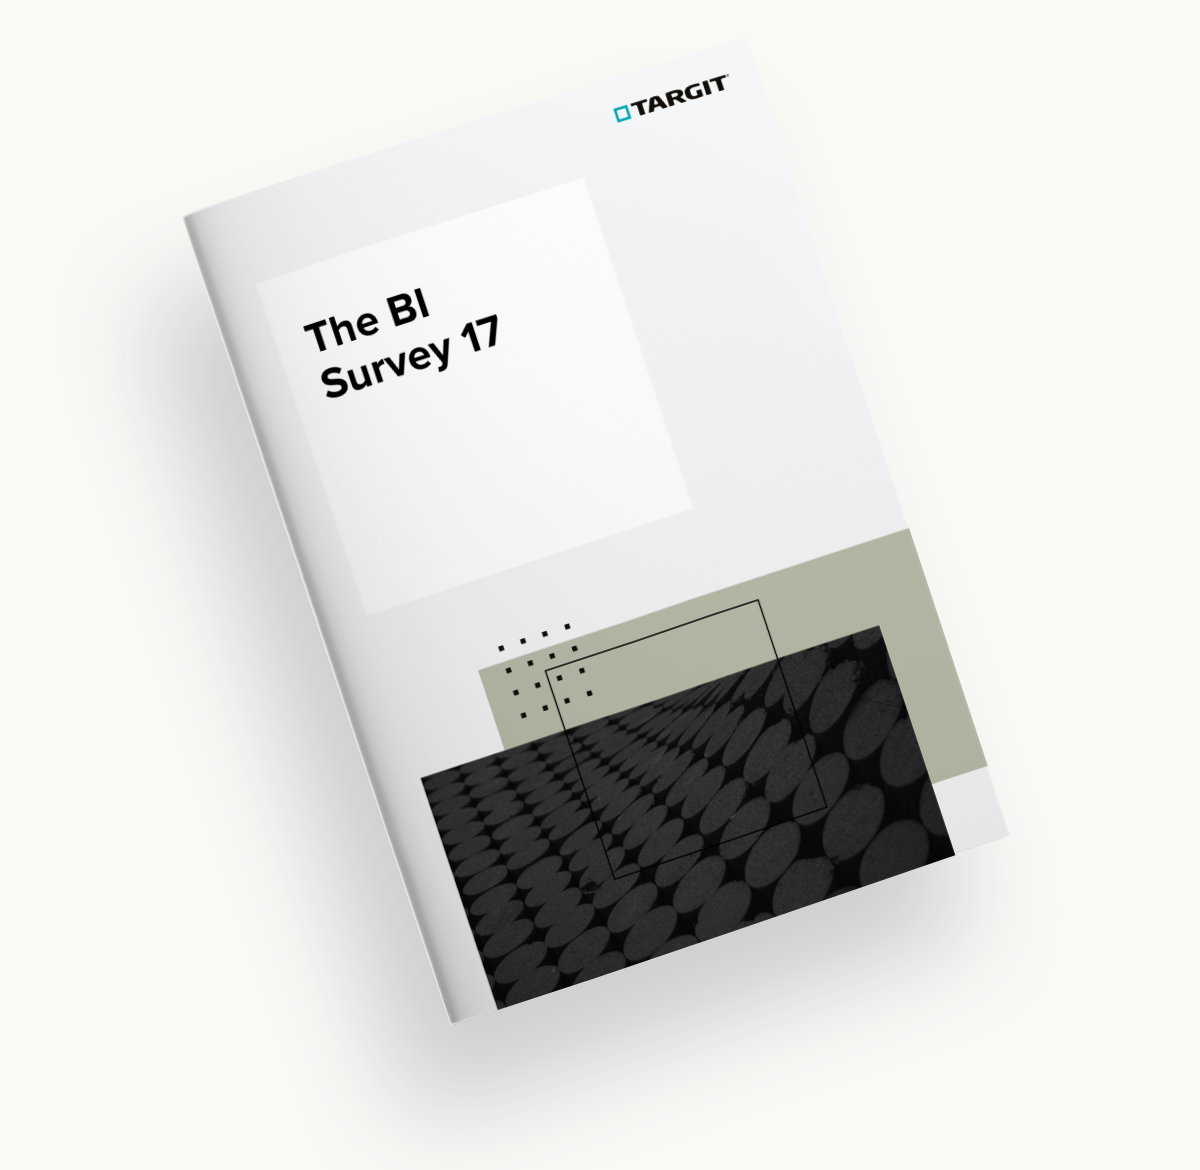 See how TARGIT ranks against the competition in The BI Survey 17